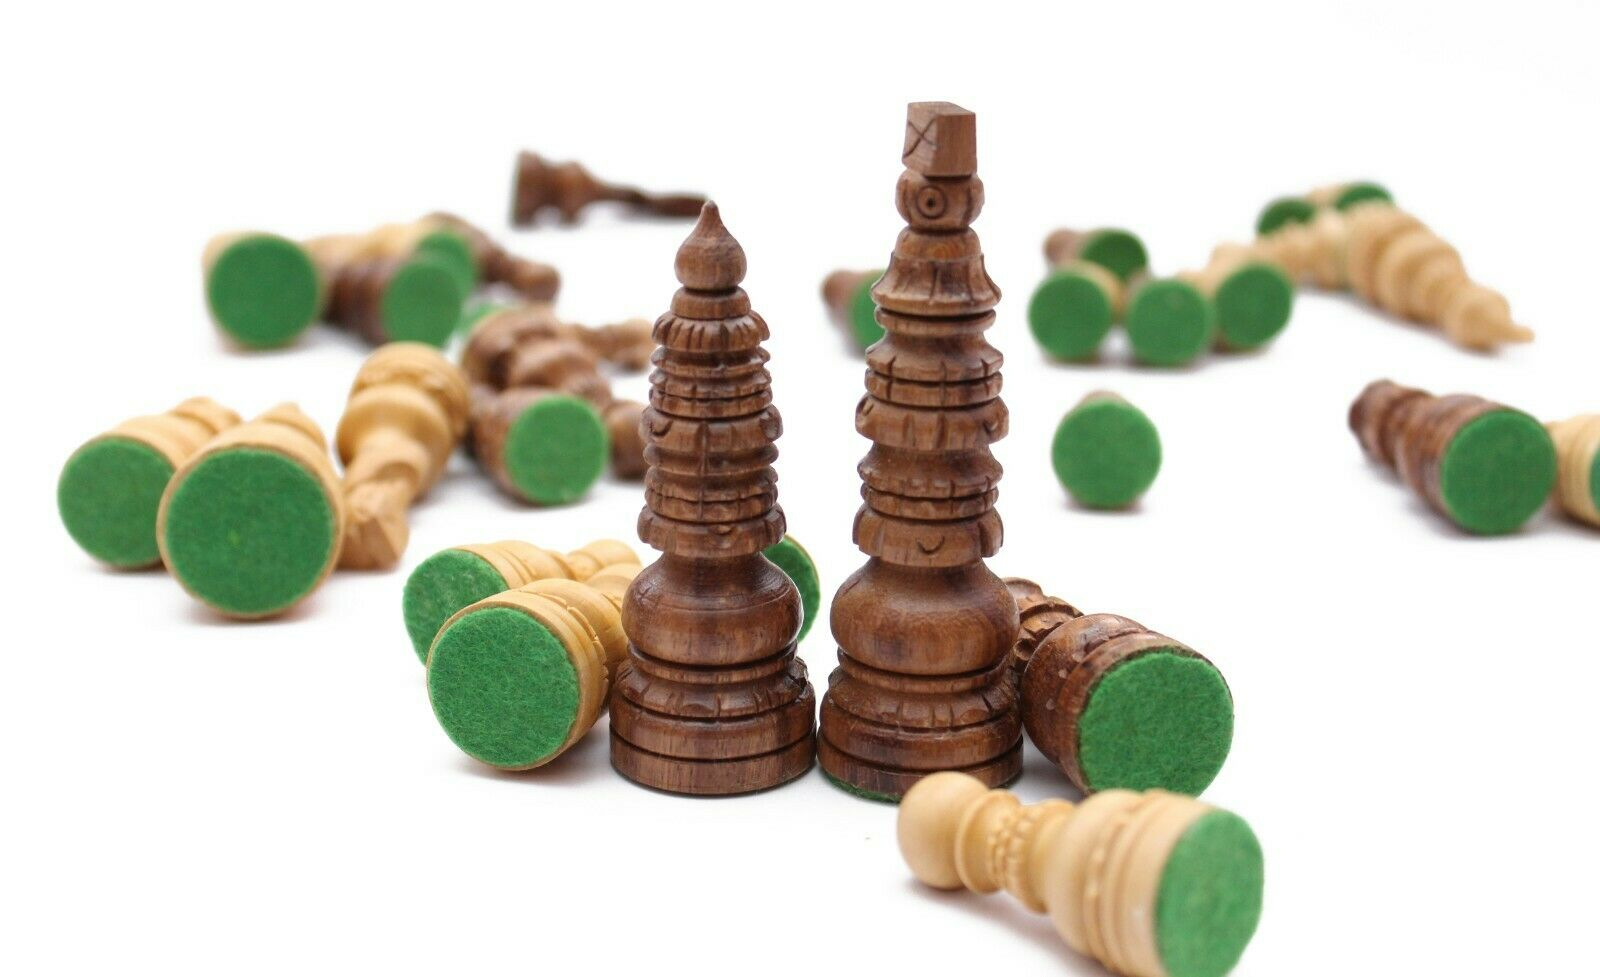 The Antique Design Indian Hand Made Chess Set Pieces Only - 3.6'' inch-King